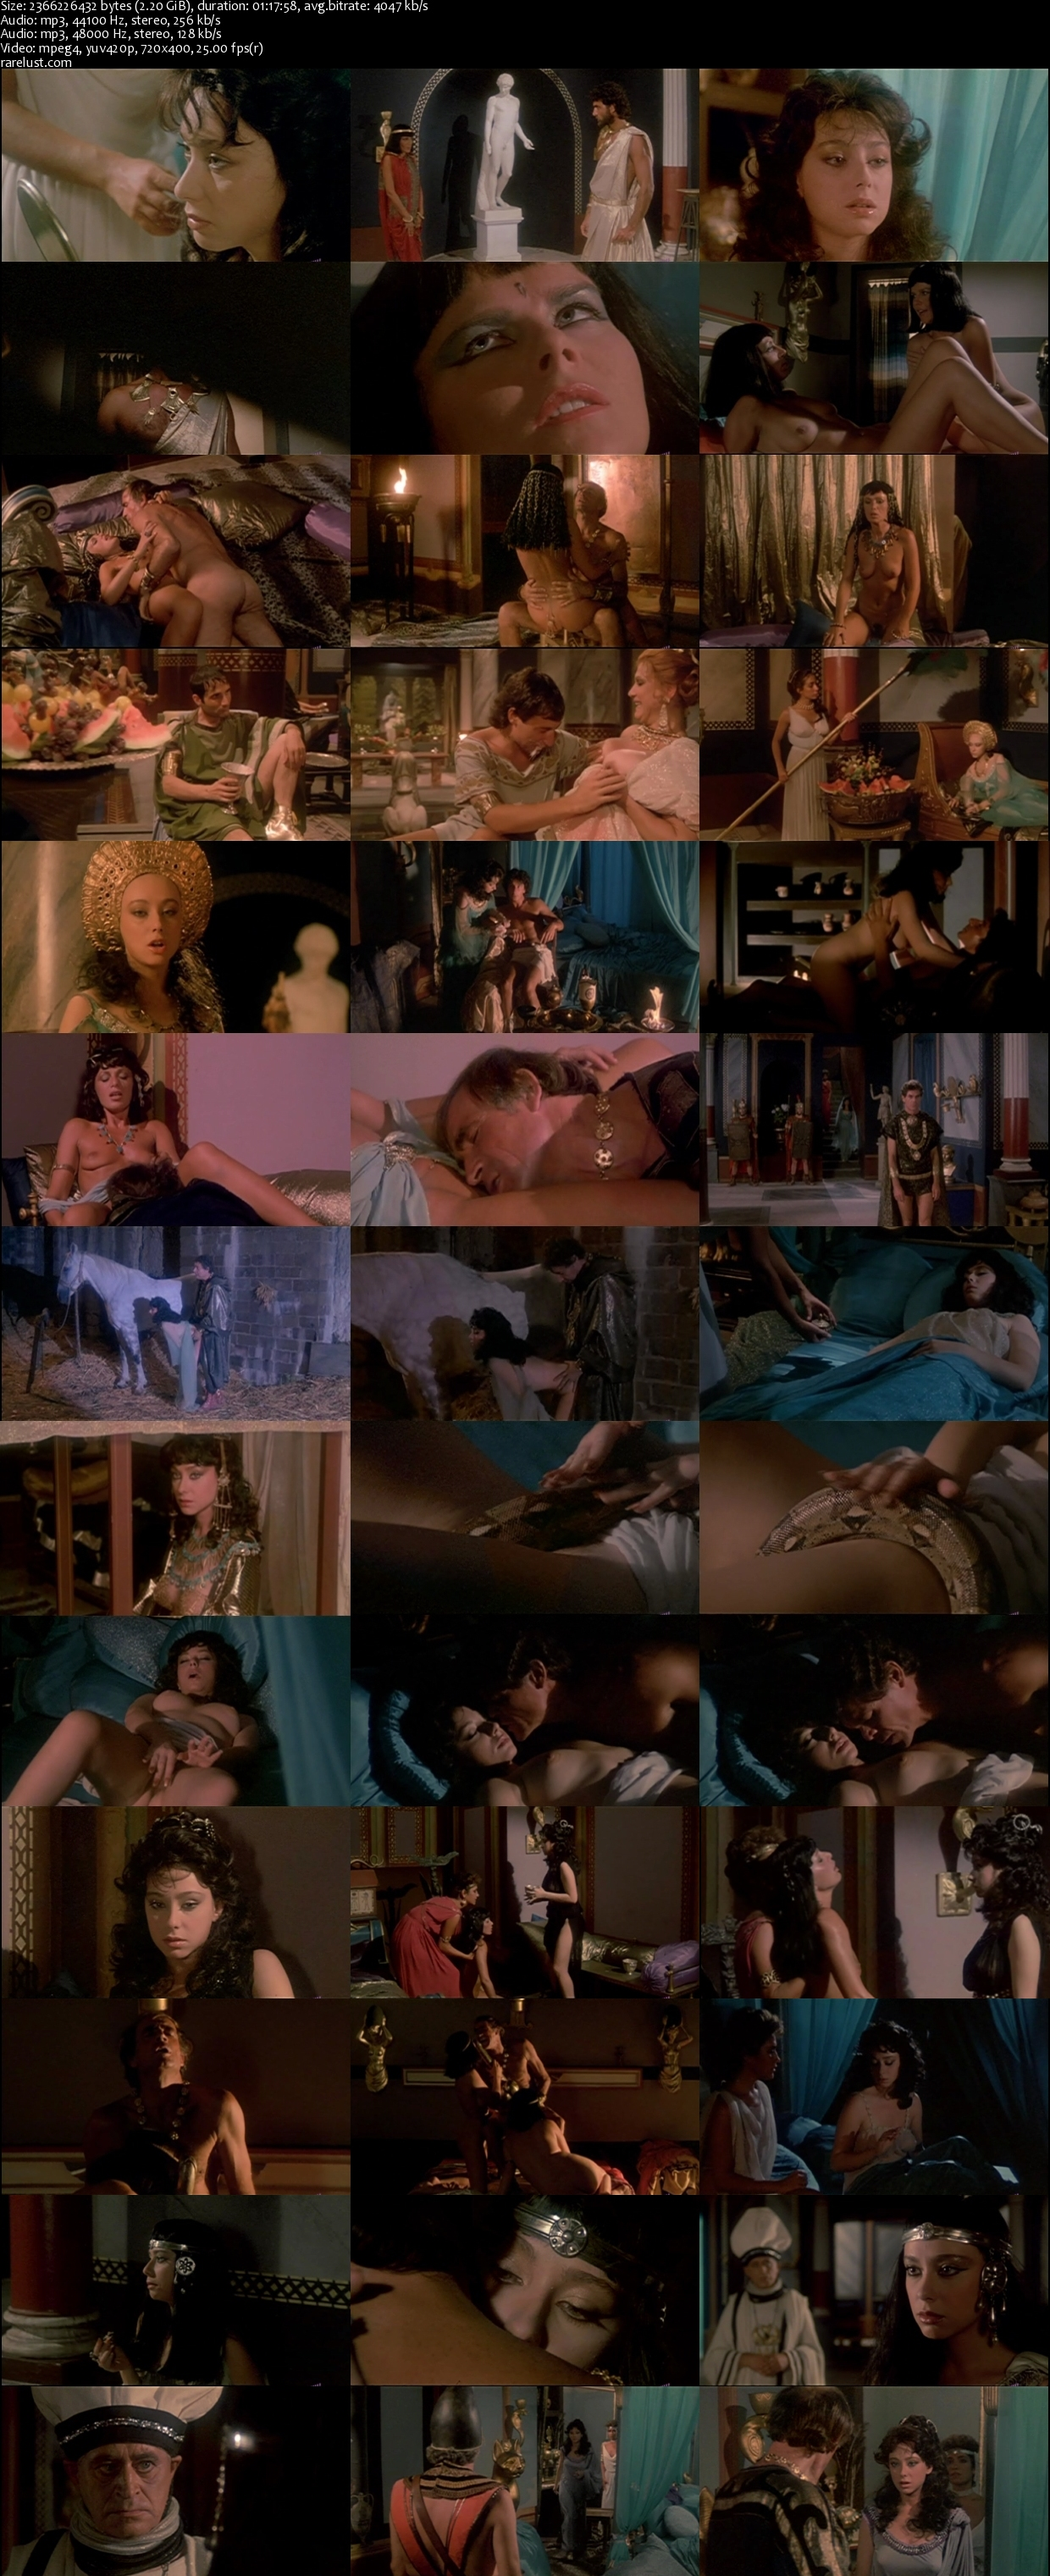 the_erotic_dreams_of_cleopatra_1985